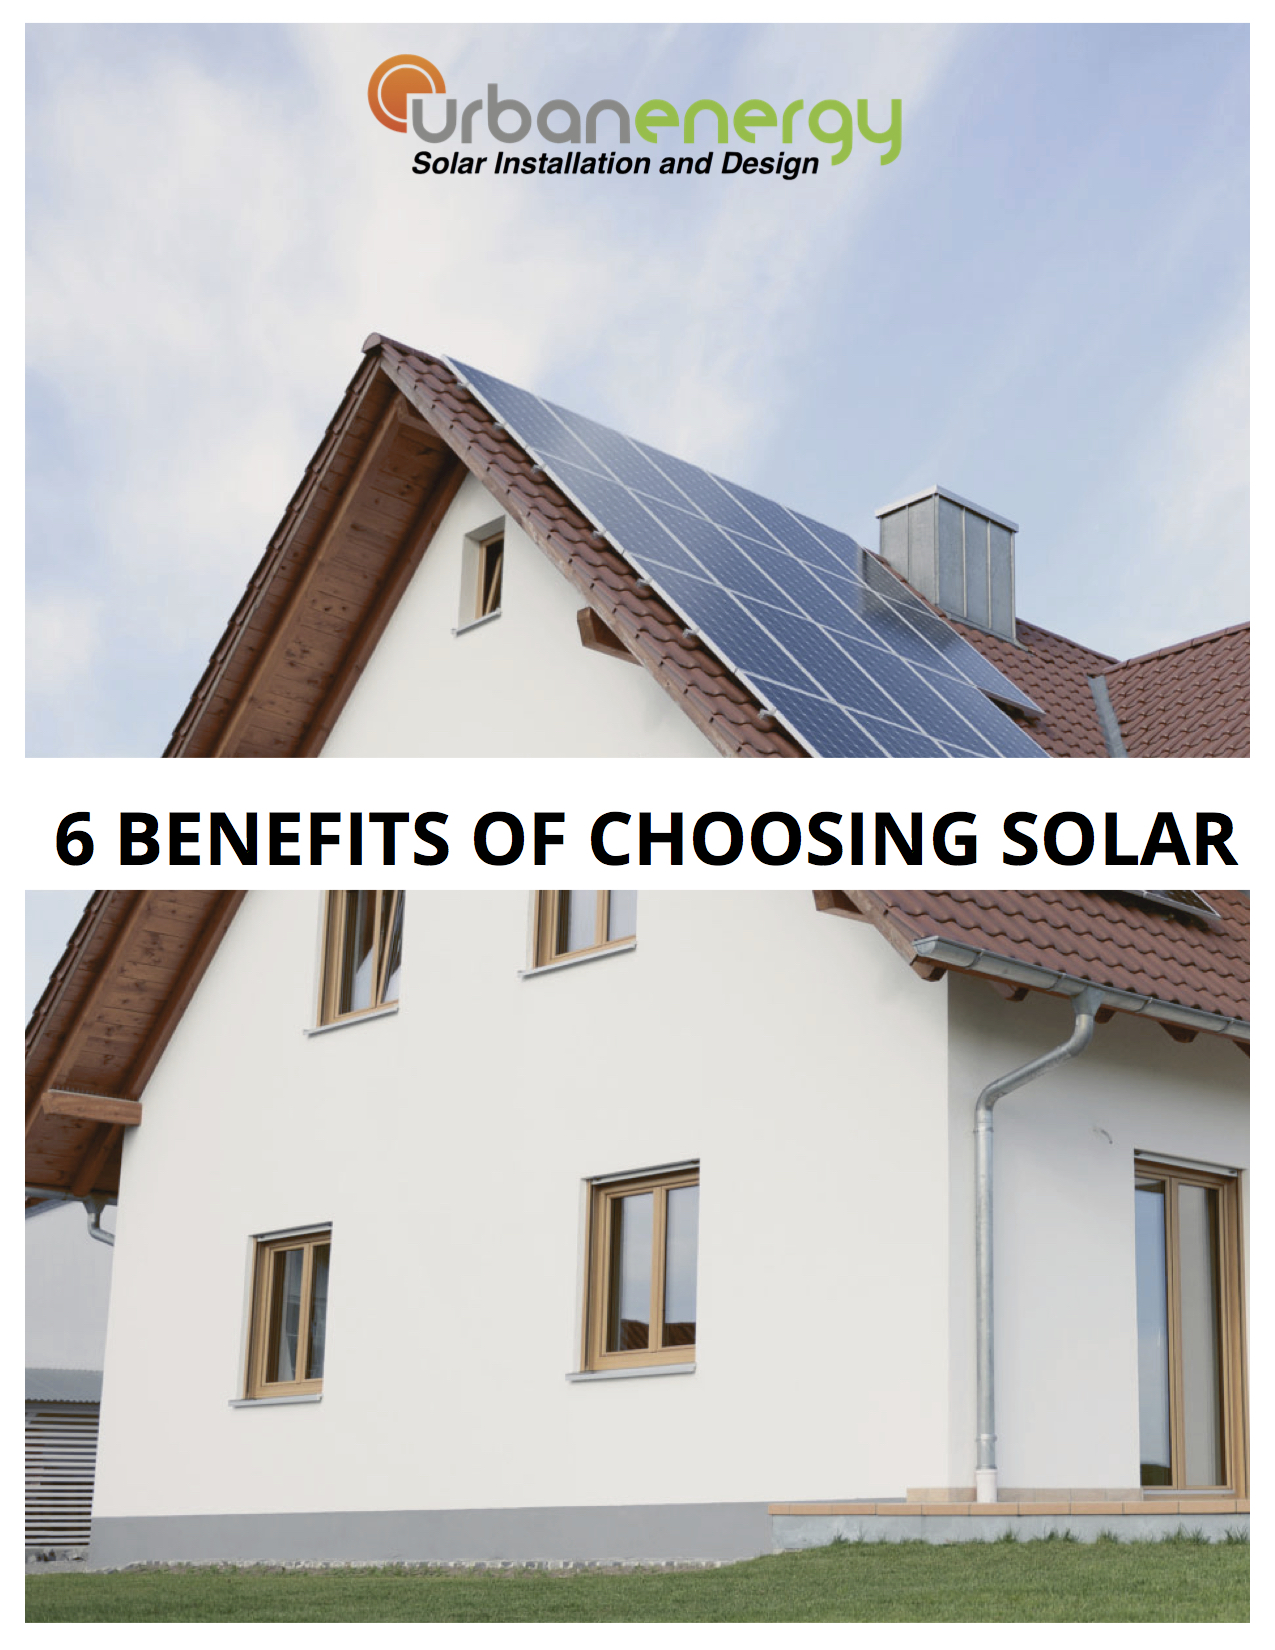 6 Benefits of Choosing Solar .jpg